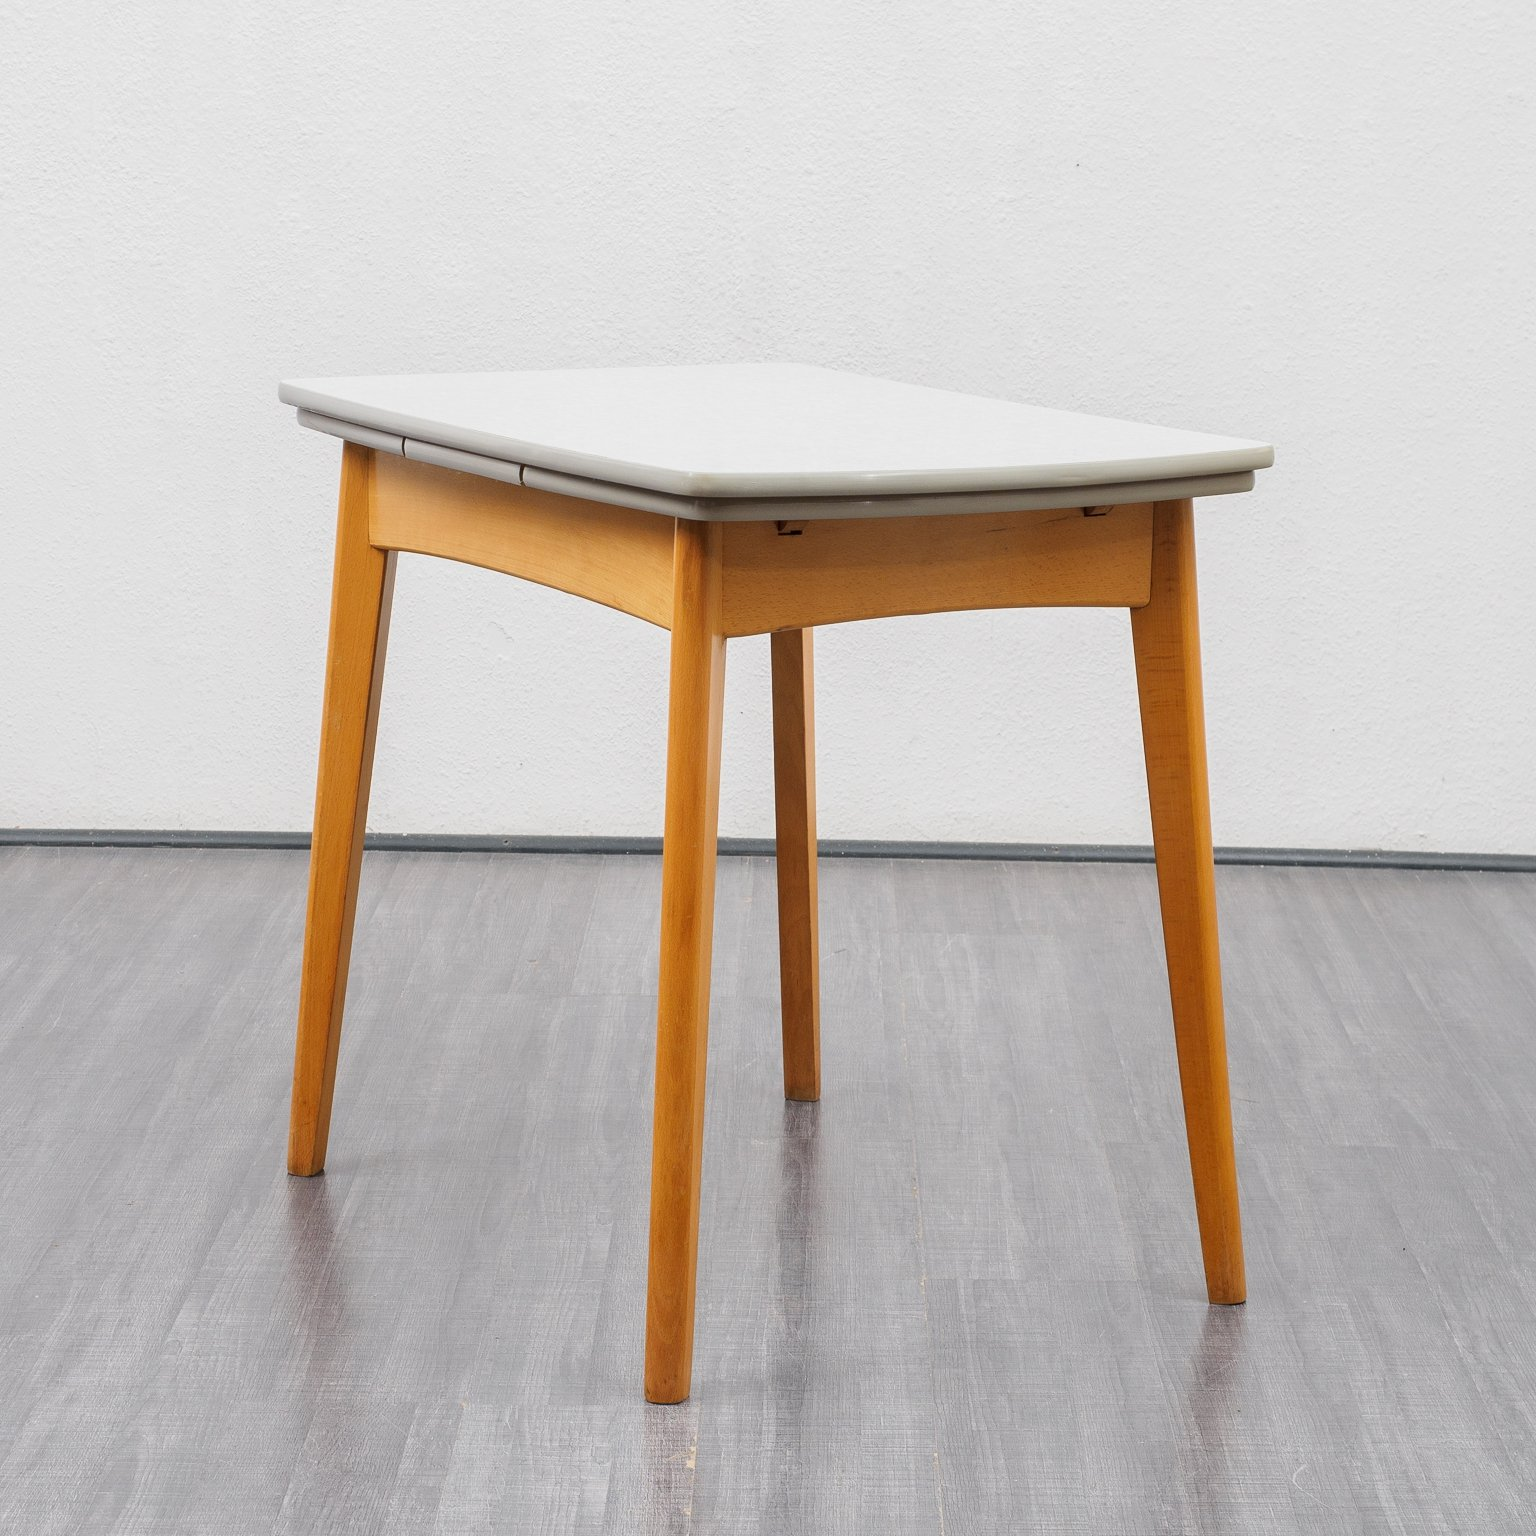 Image of: Small Vintage Extendable Kitchen Table 1950s 143337